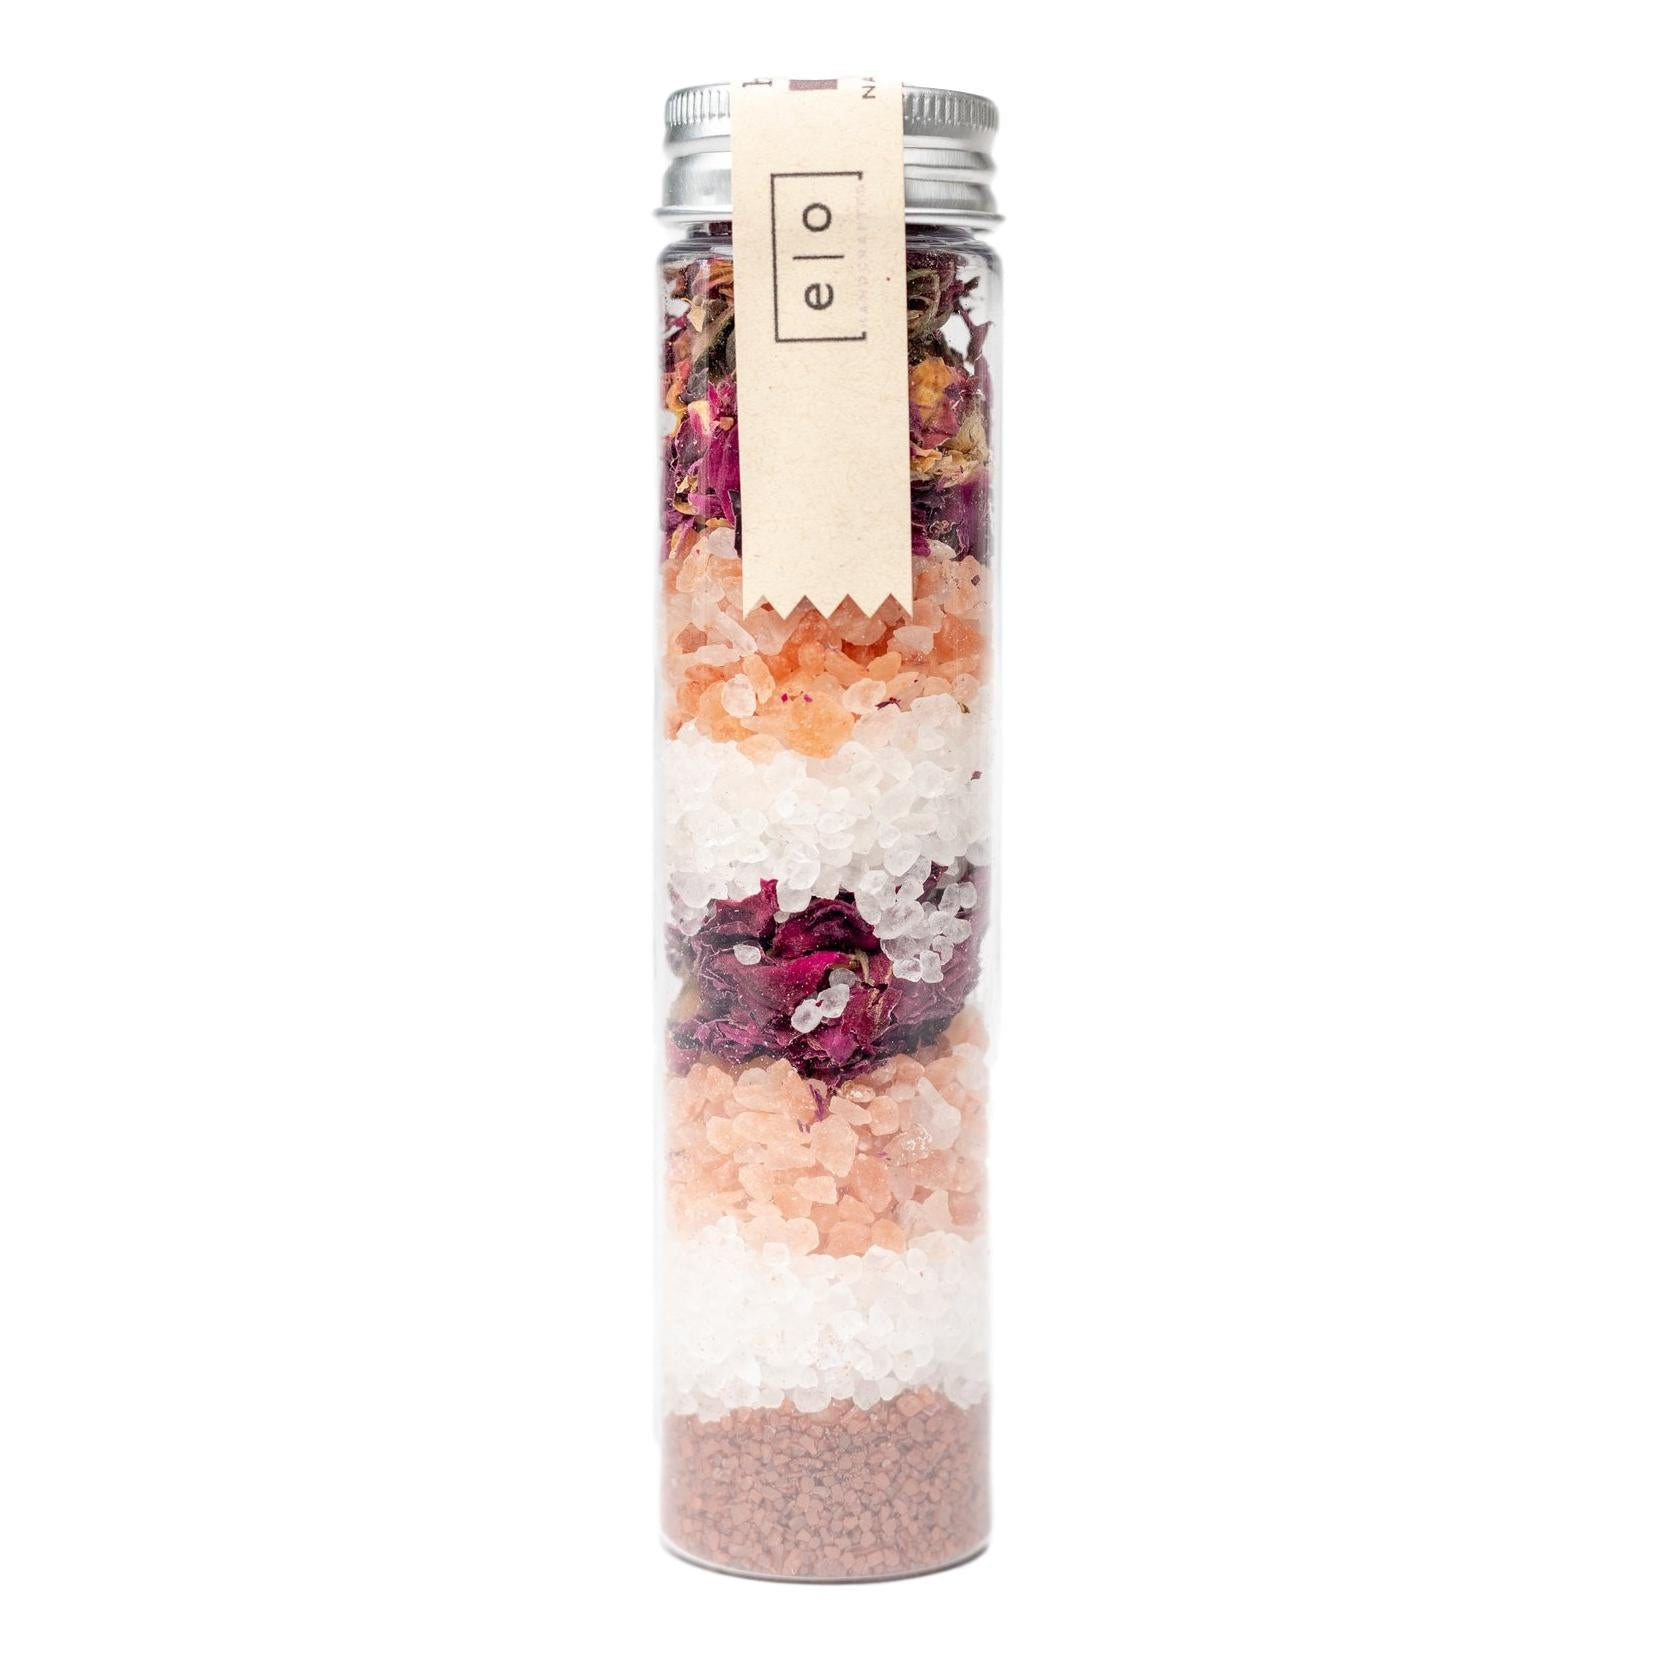 Bath Salt Tube - Giften Market